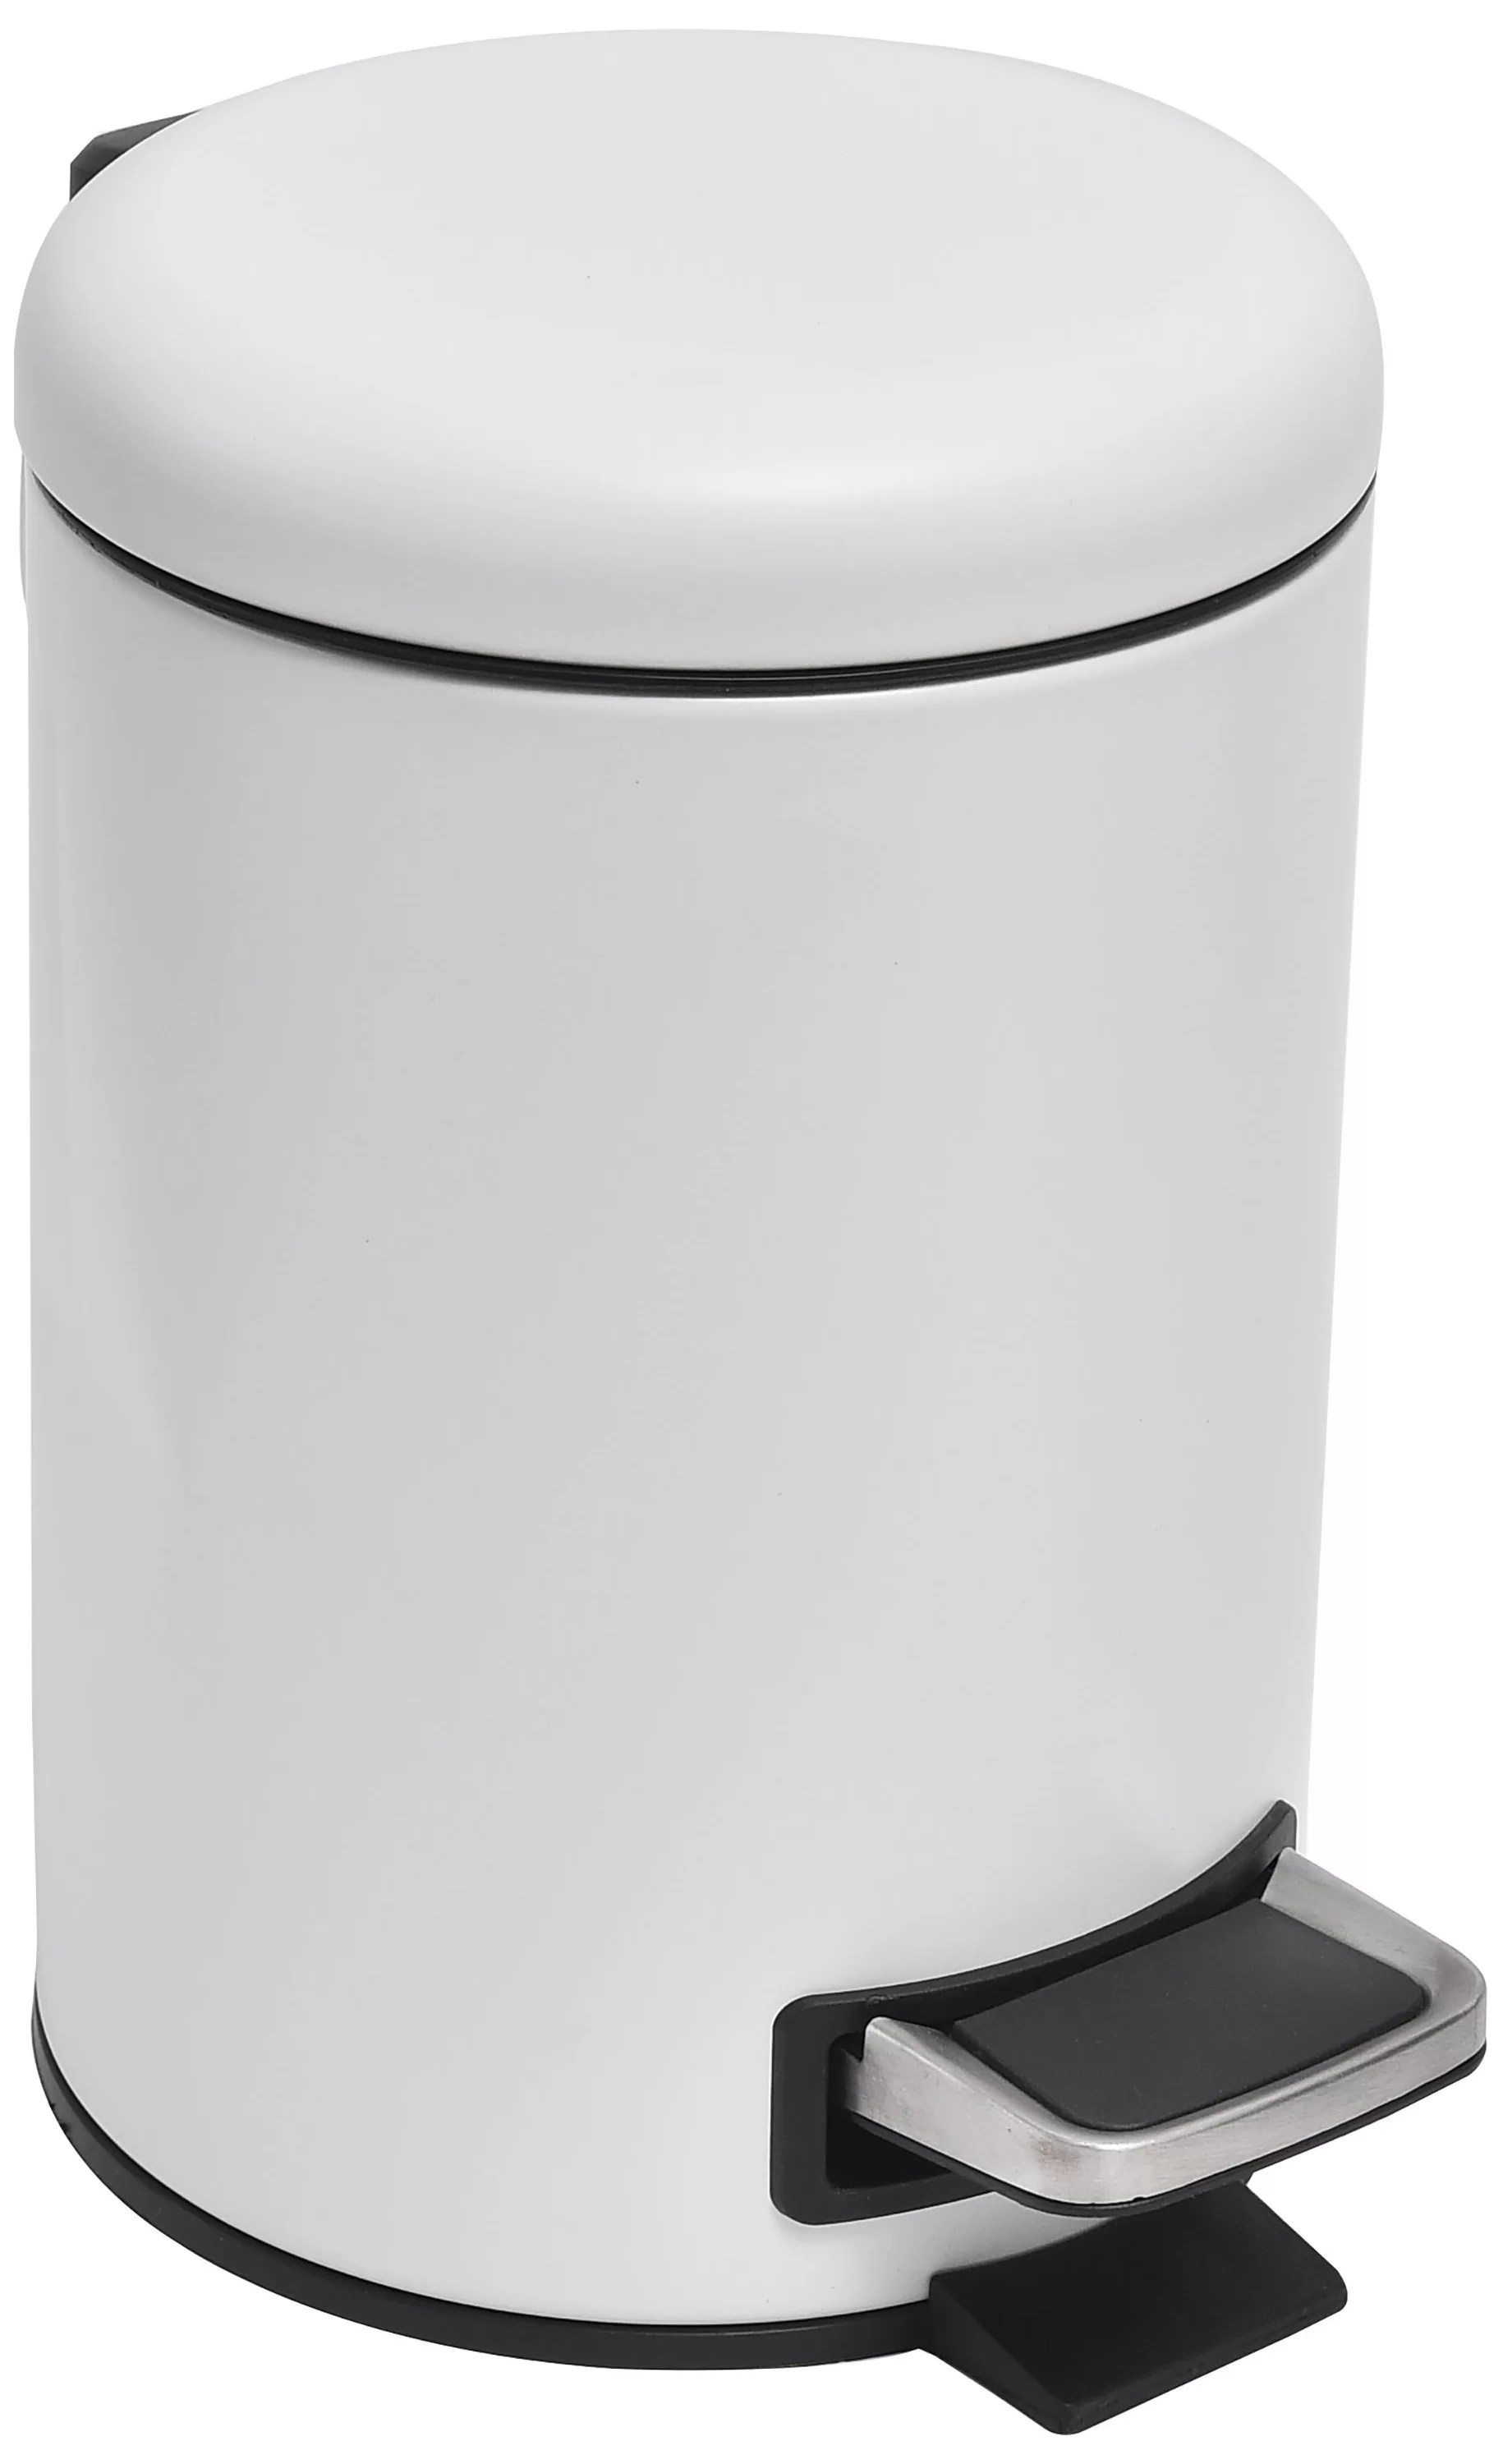 Small Kitchen Trash Cans Soft Close Small Round Bathroom Floor 8 Gallon Step On Trash Can